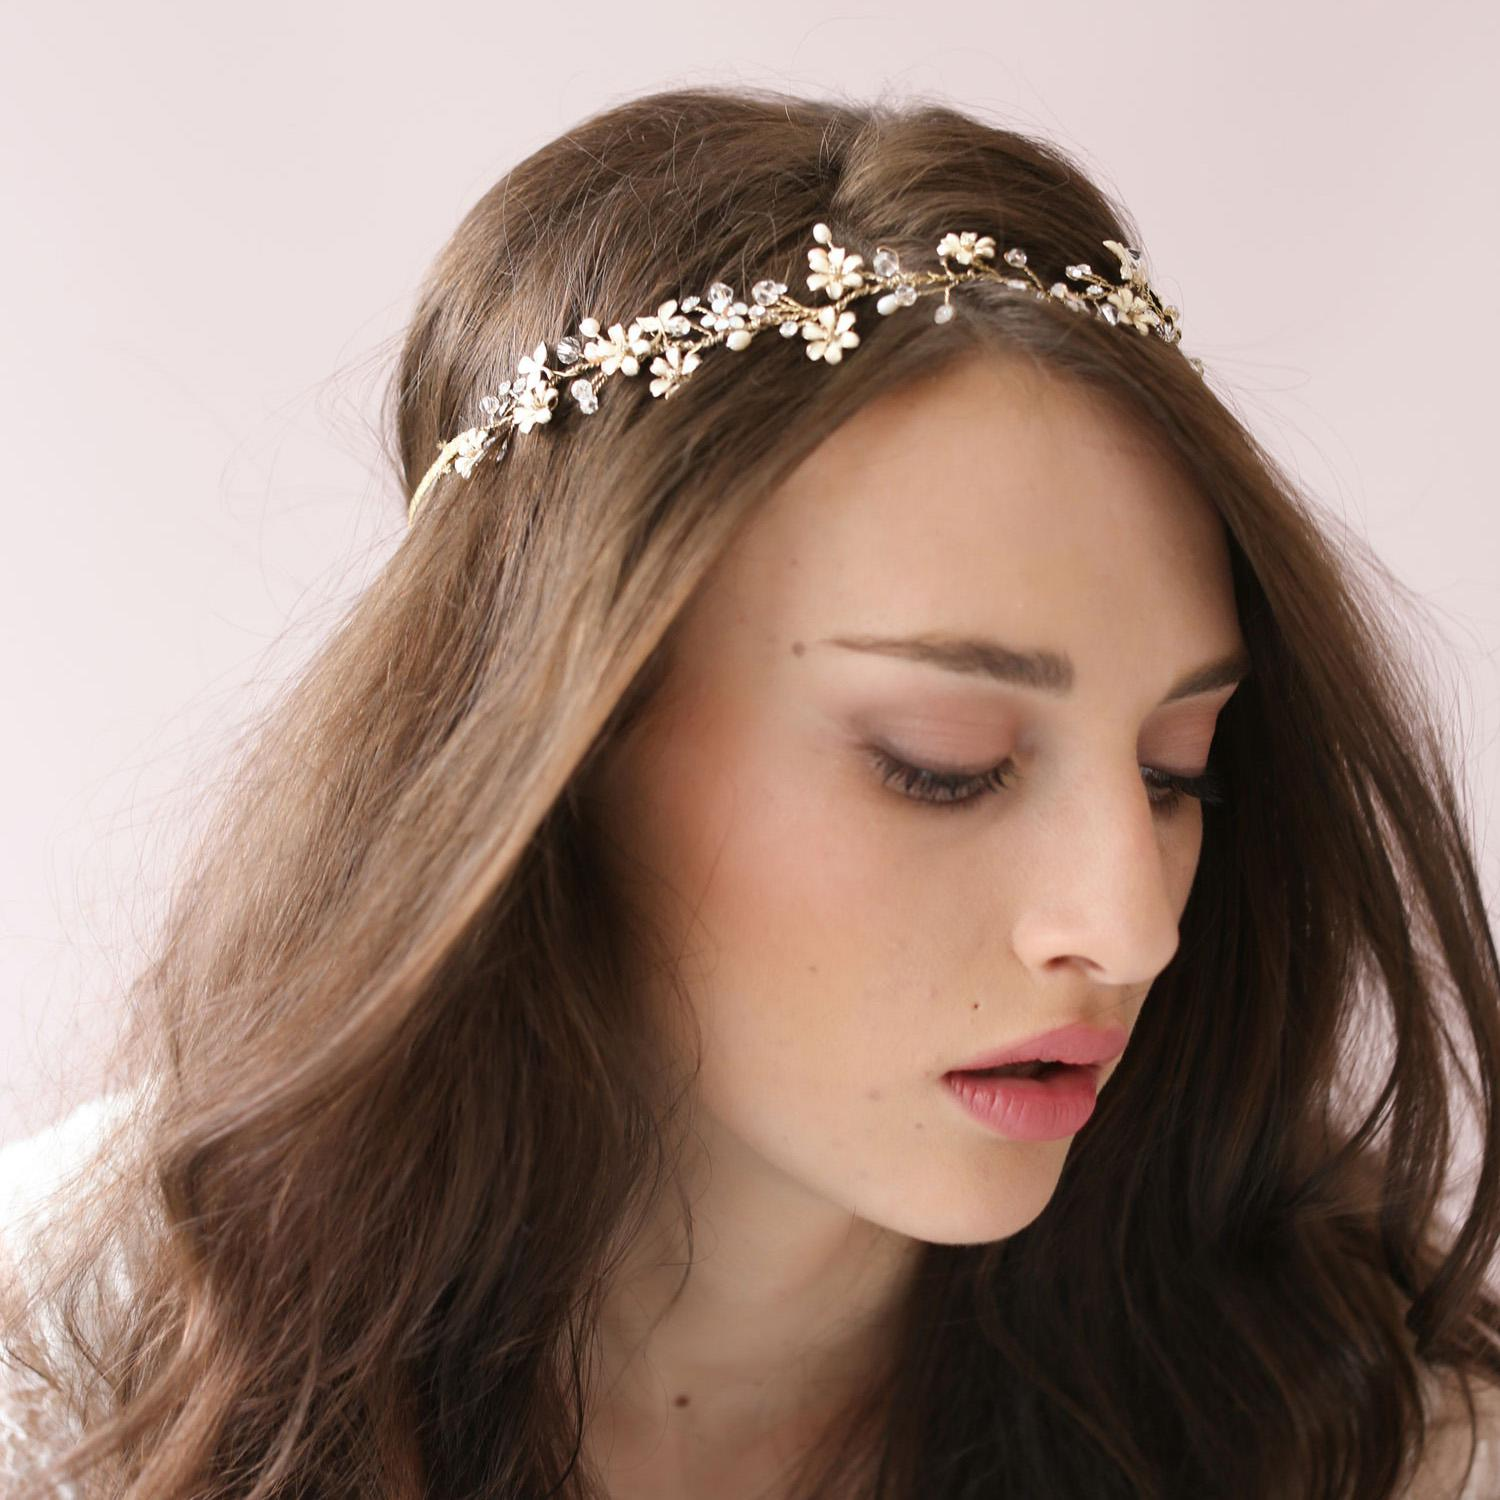 Tiny Enamel Blossom Crystal Hair Vine Bridal Hairband